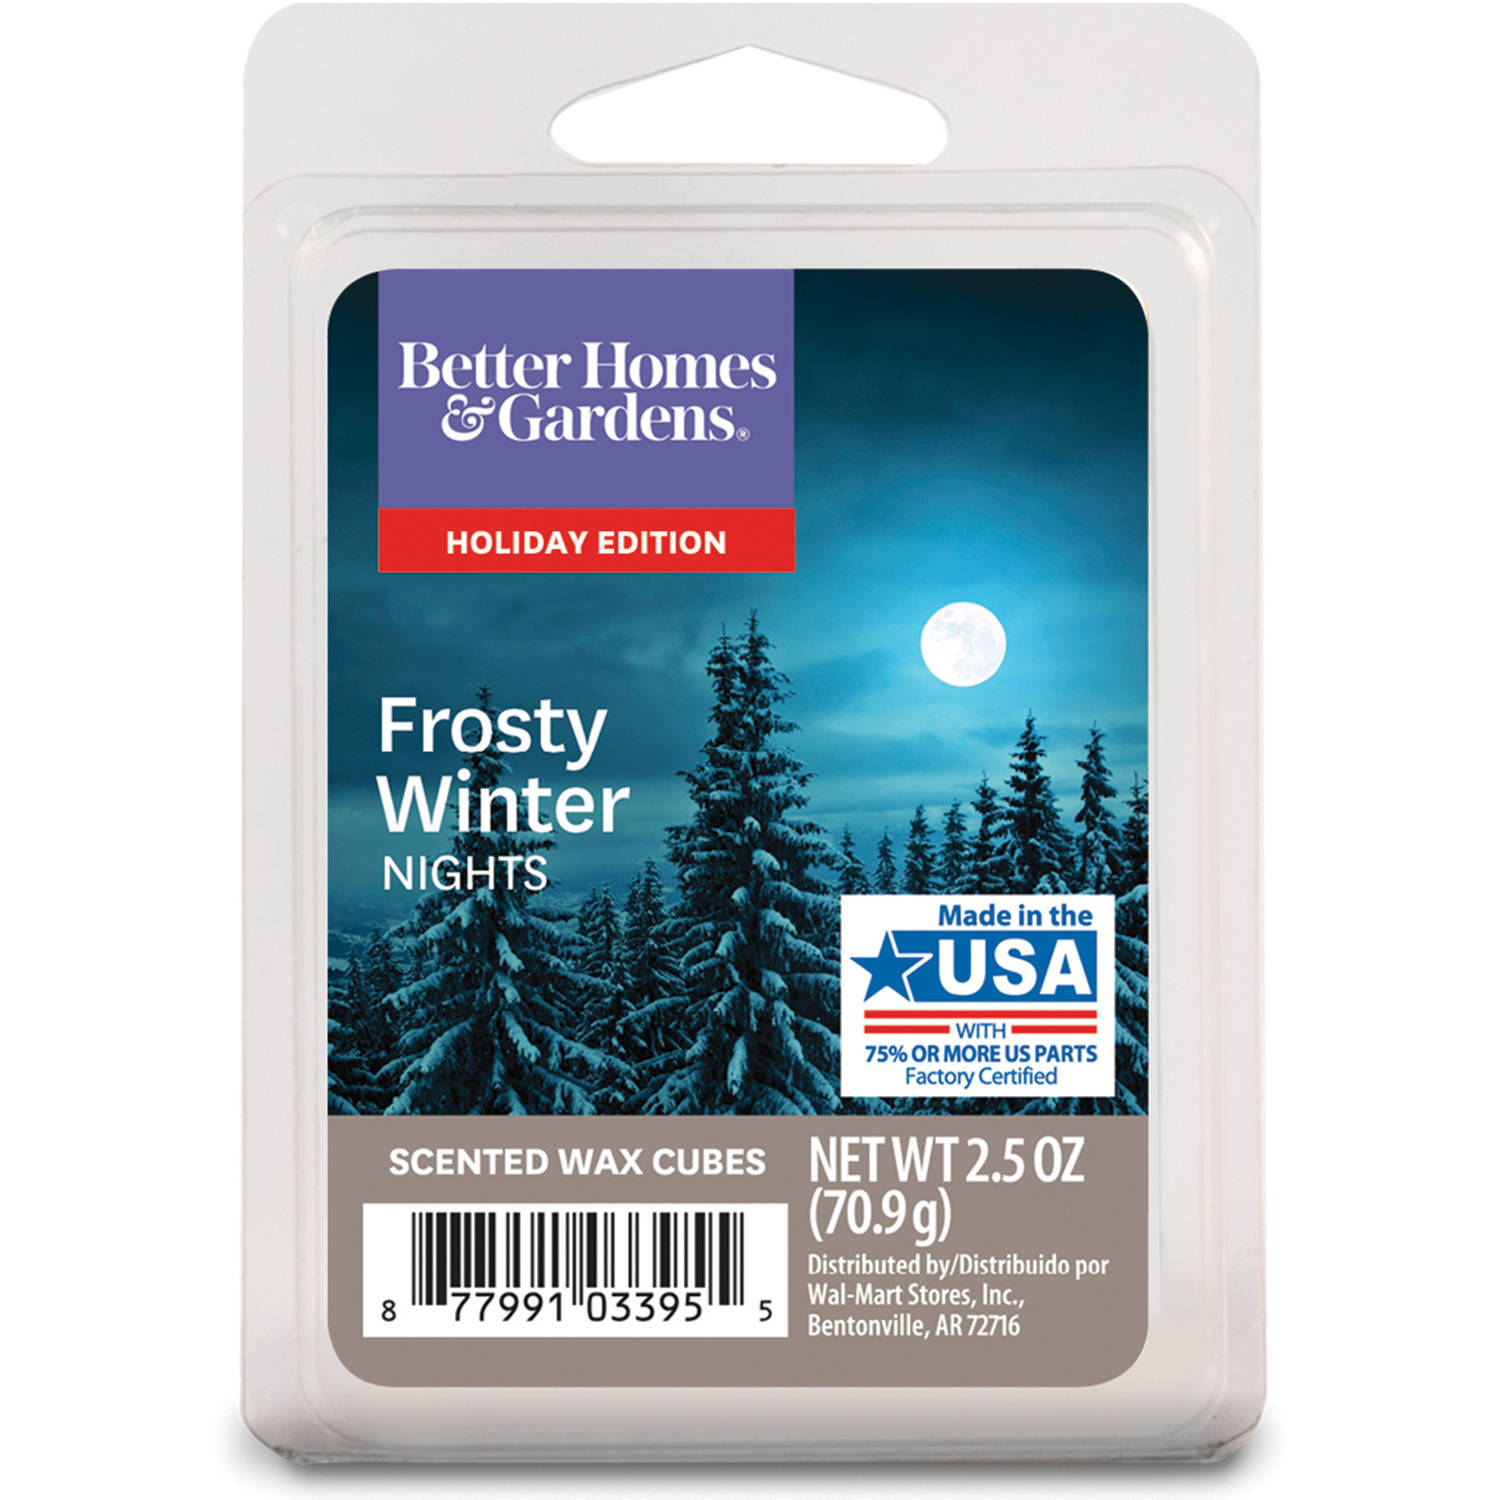 Better Homes & Gardens Frosty Winter Nights Scented Wax Cubes